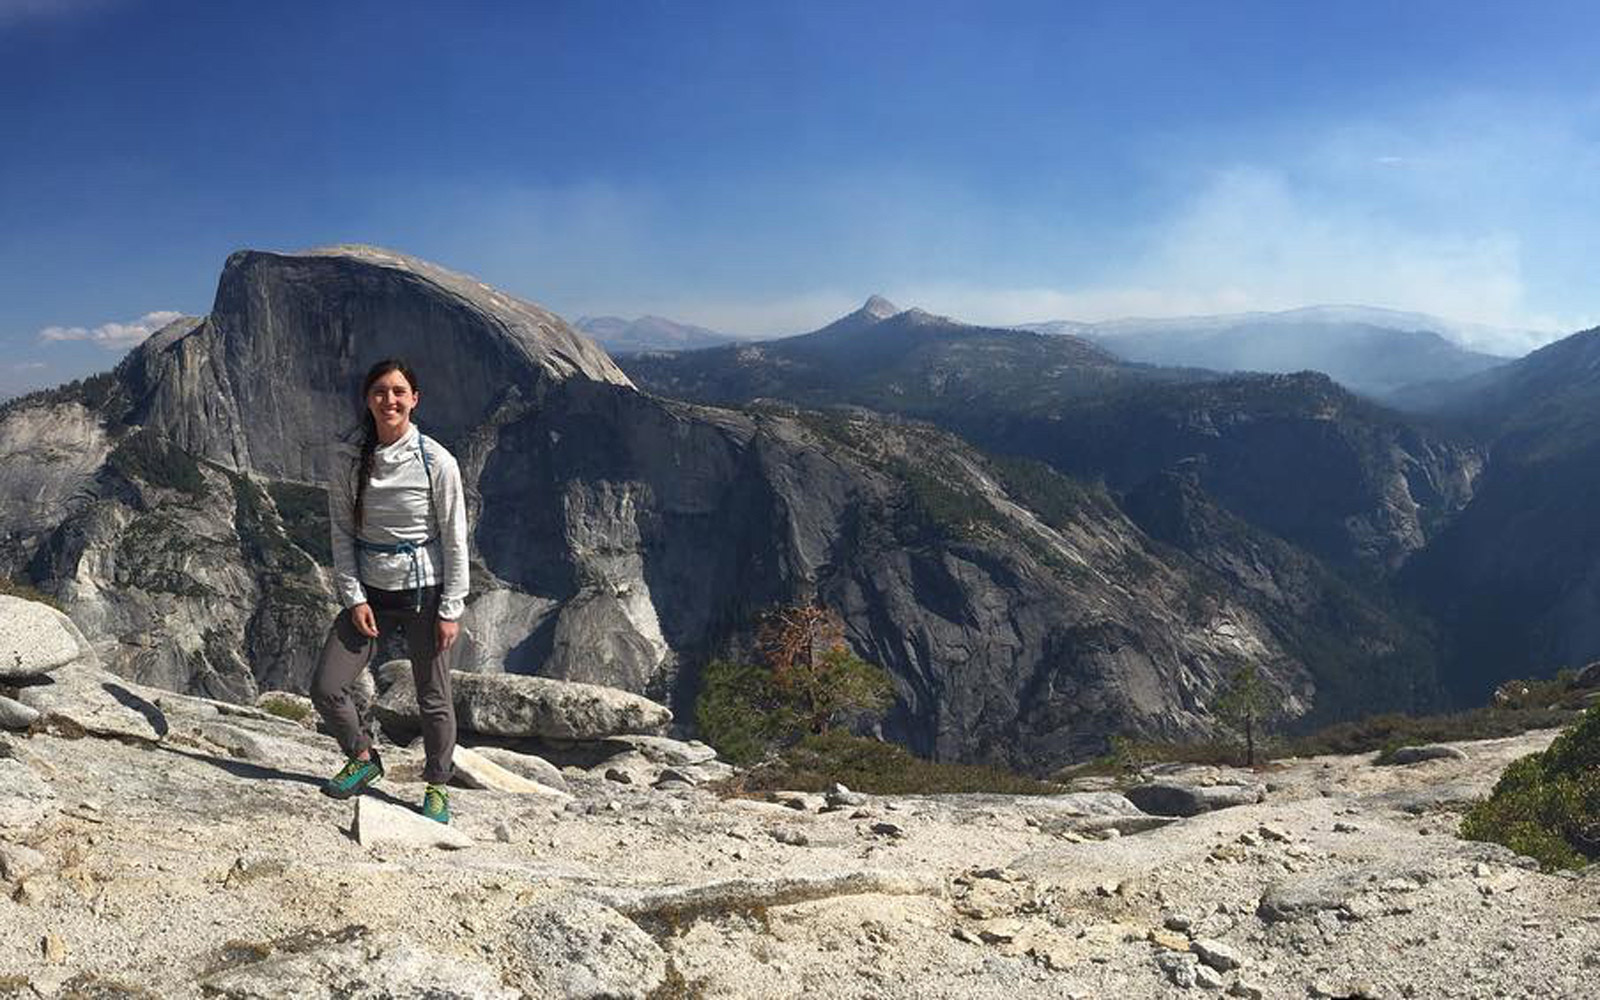 How This 29-year-old Data Scientist Quit Her Job to Become a Full-time Rock Climber